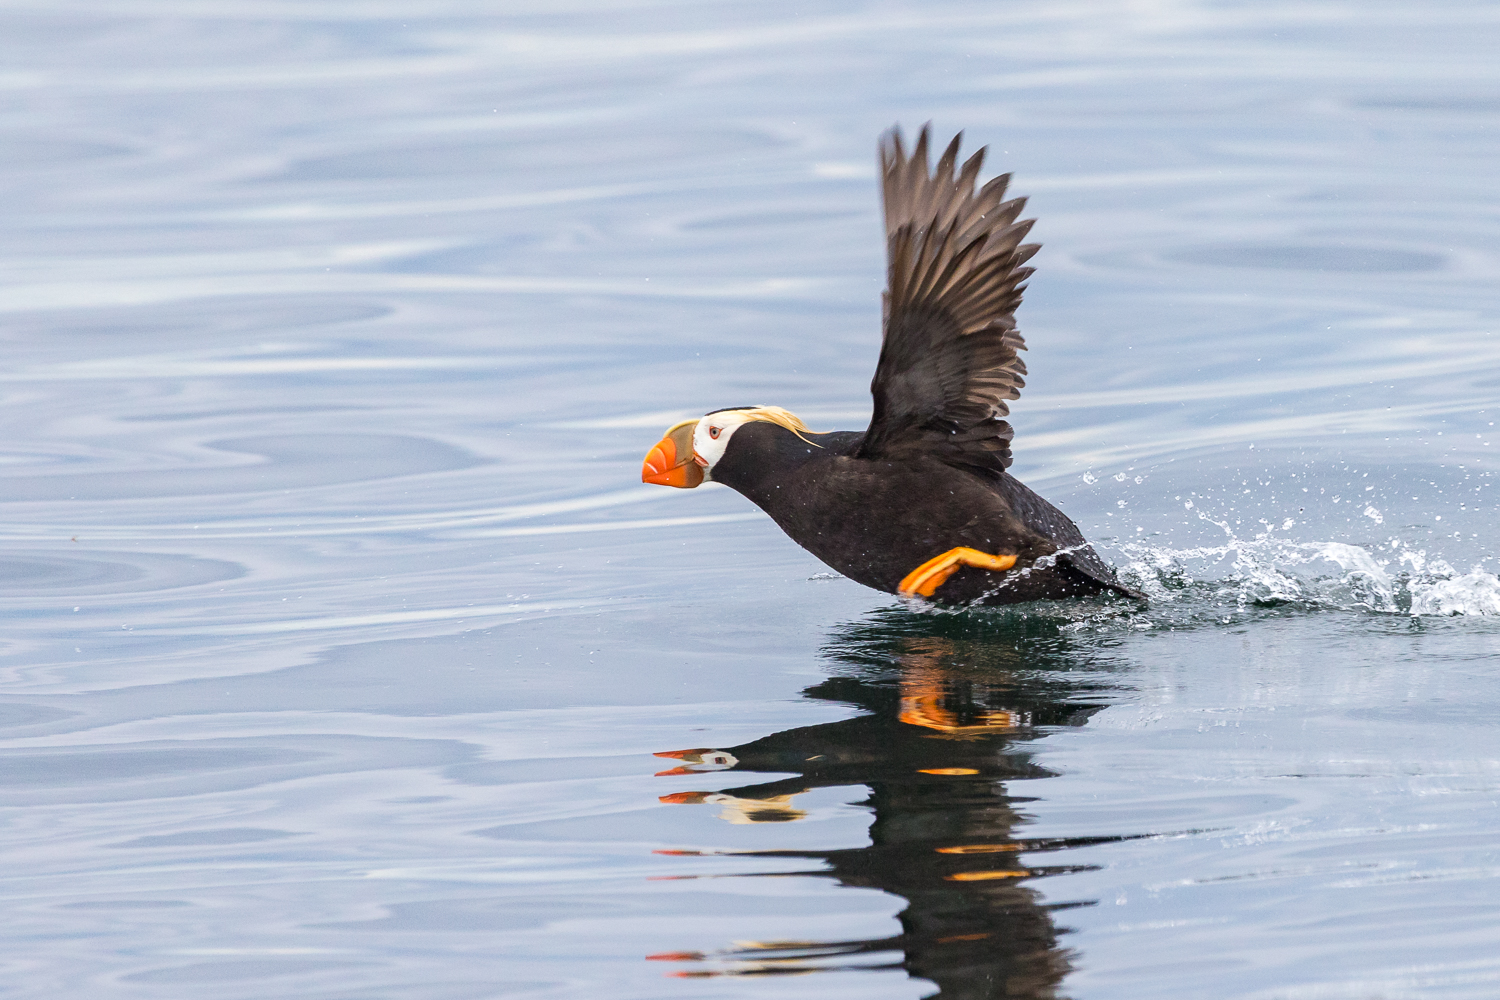 Tufted Puffin taking off.